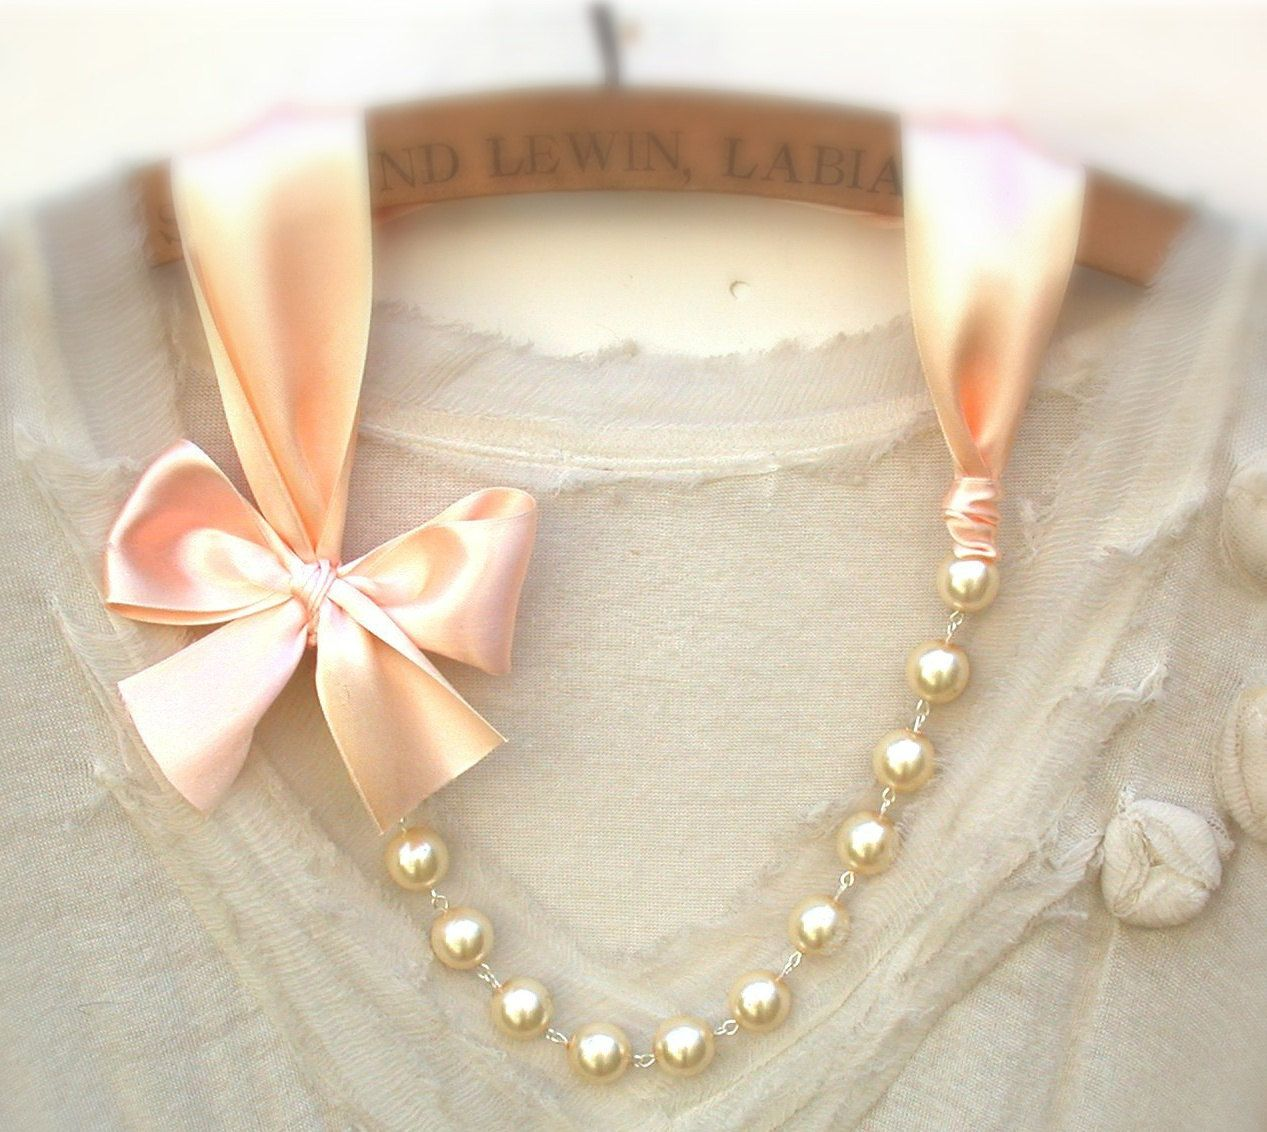 designer in necklace jewelry pearl from on grey item multilayer ribbon group accessories satin luxury necklaces aliexpress choker faux alibaba com